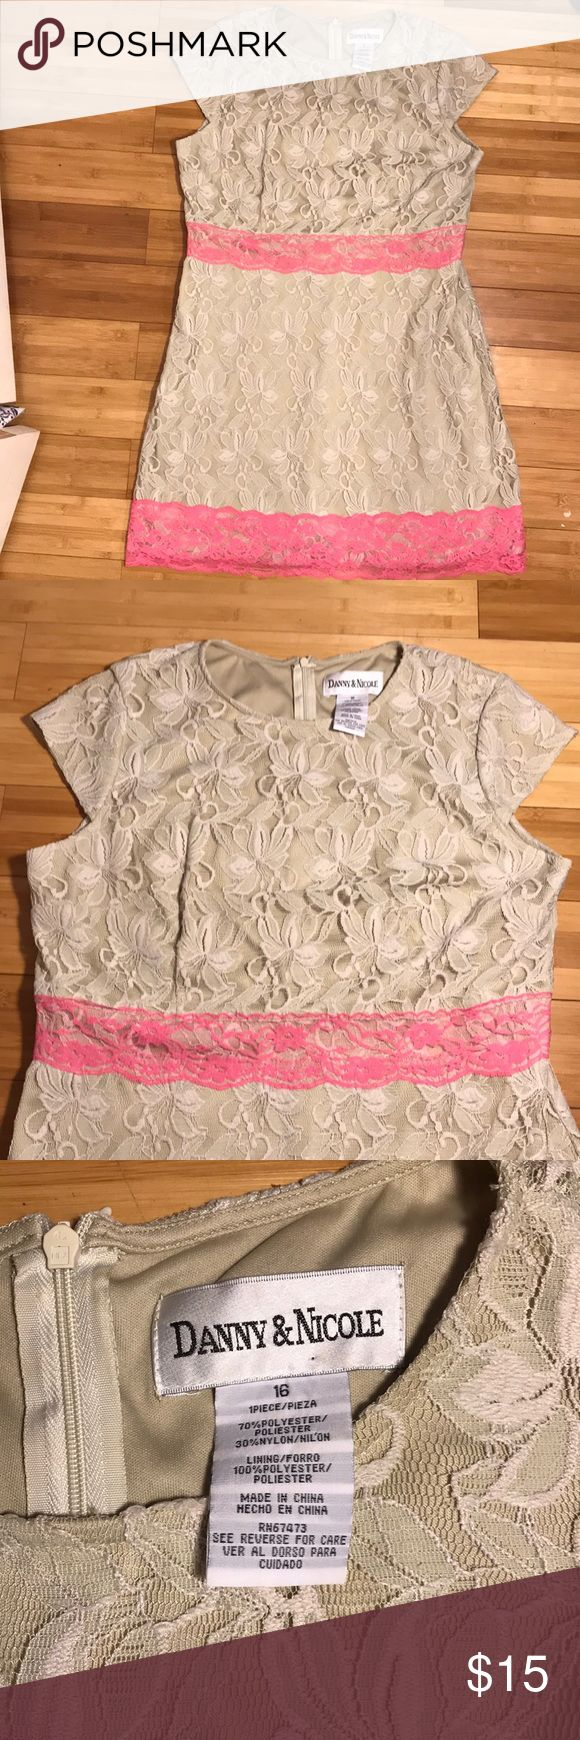 Lace dress Danny & Nicole tan lace dress with hot pink detail. Size 16. Danny & Nicole Dresses